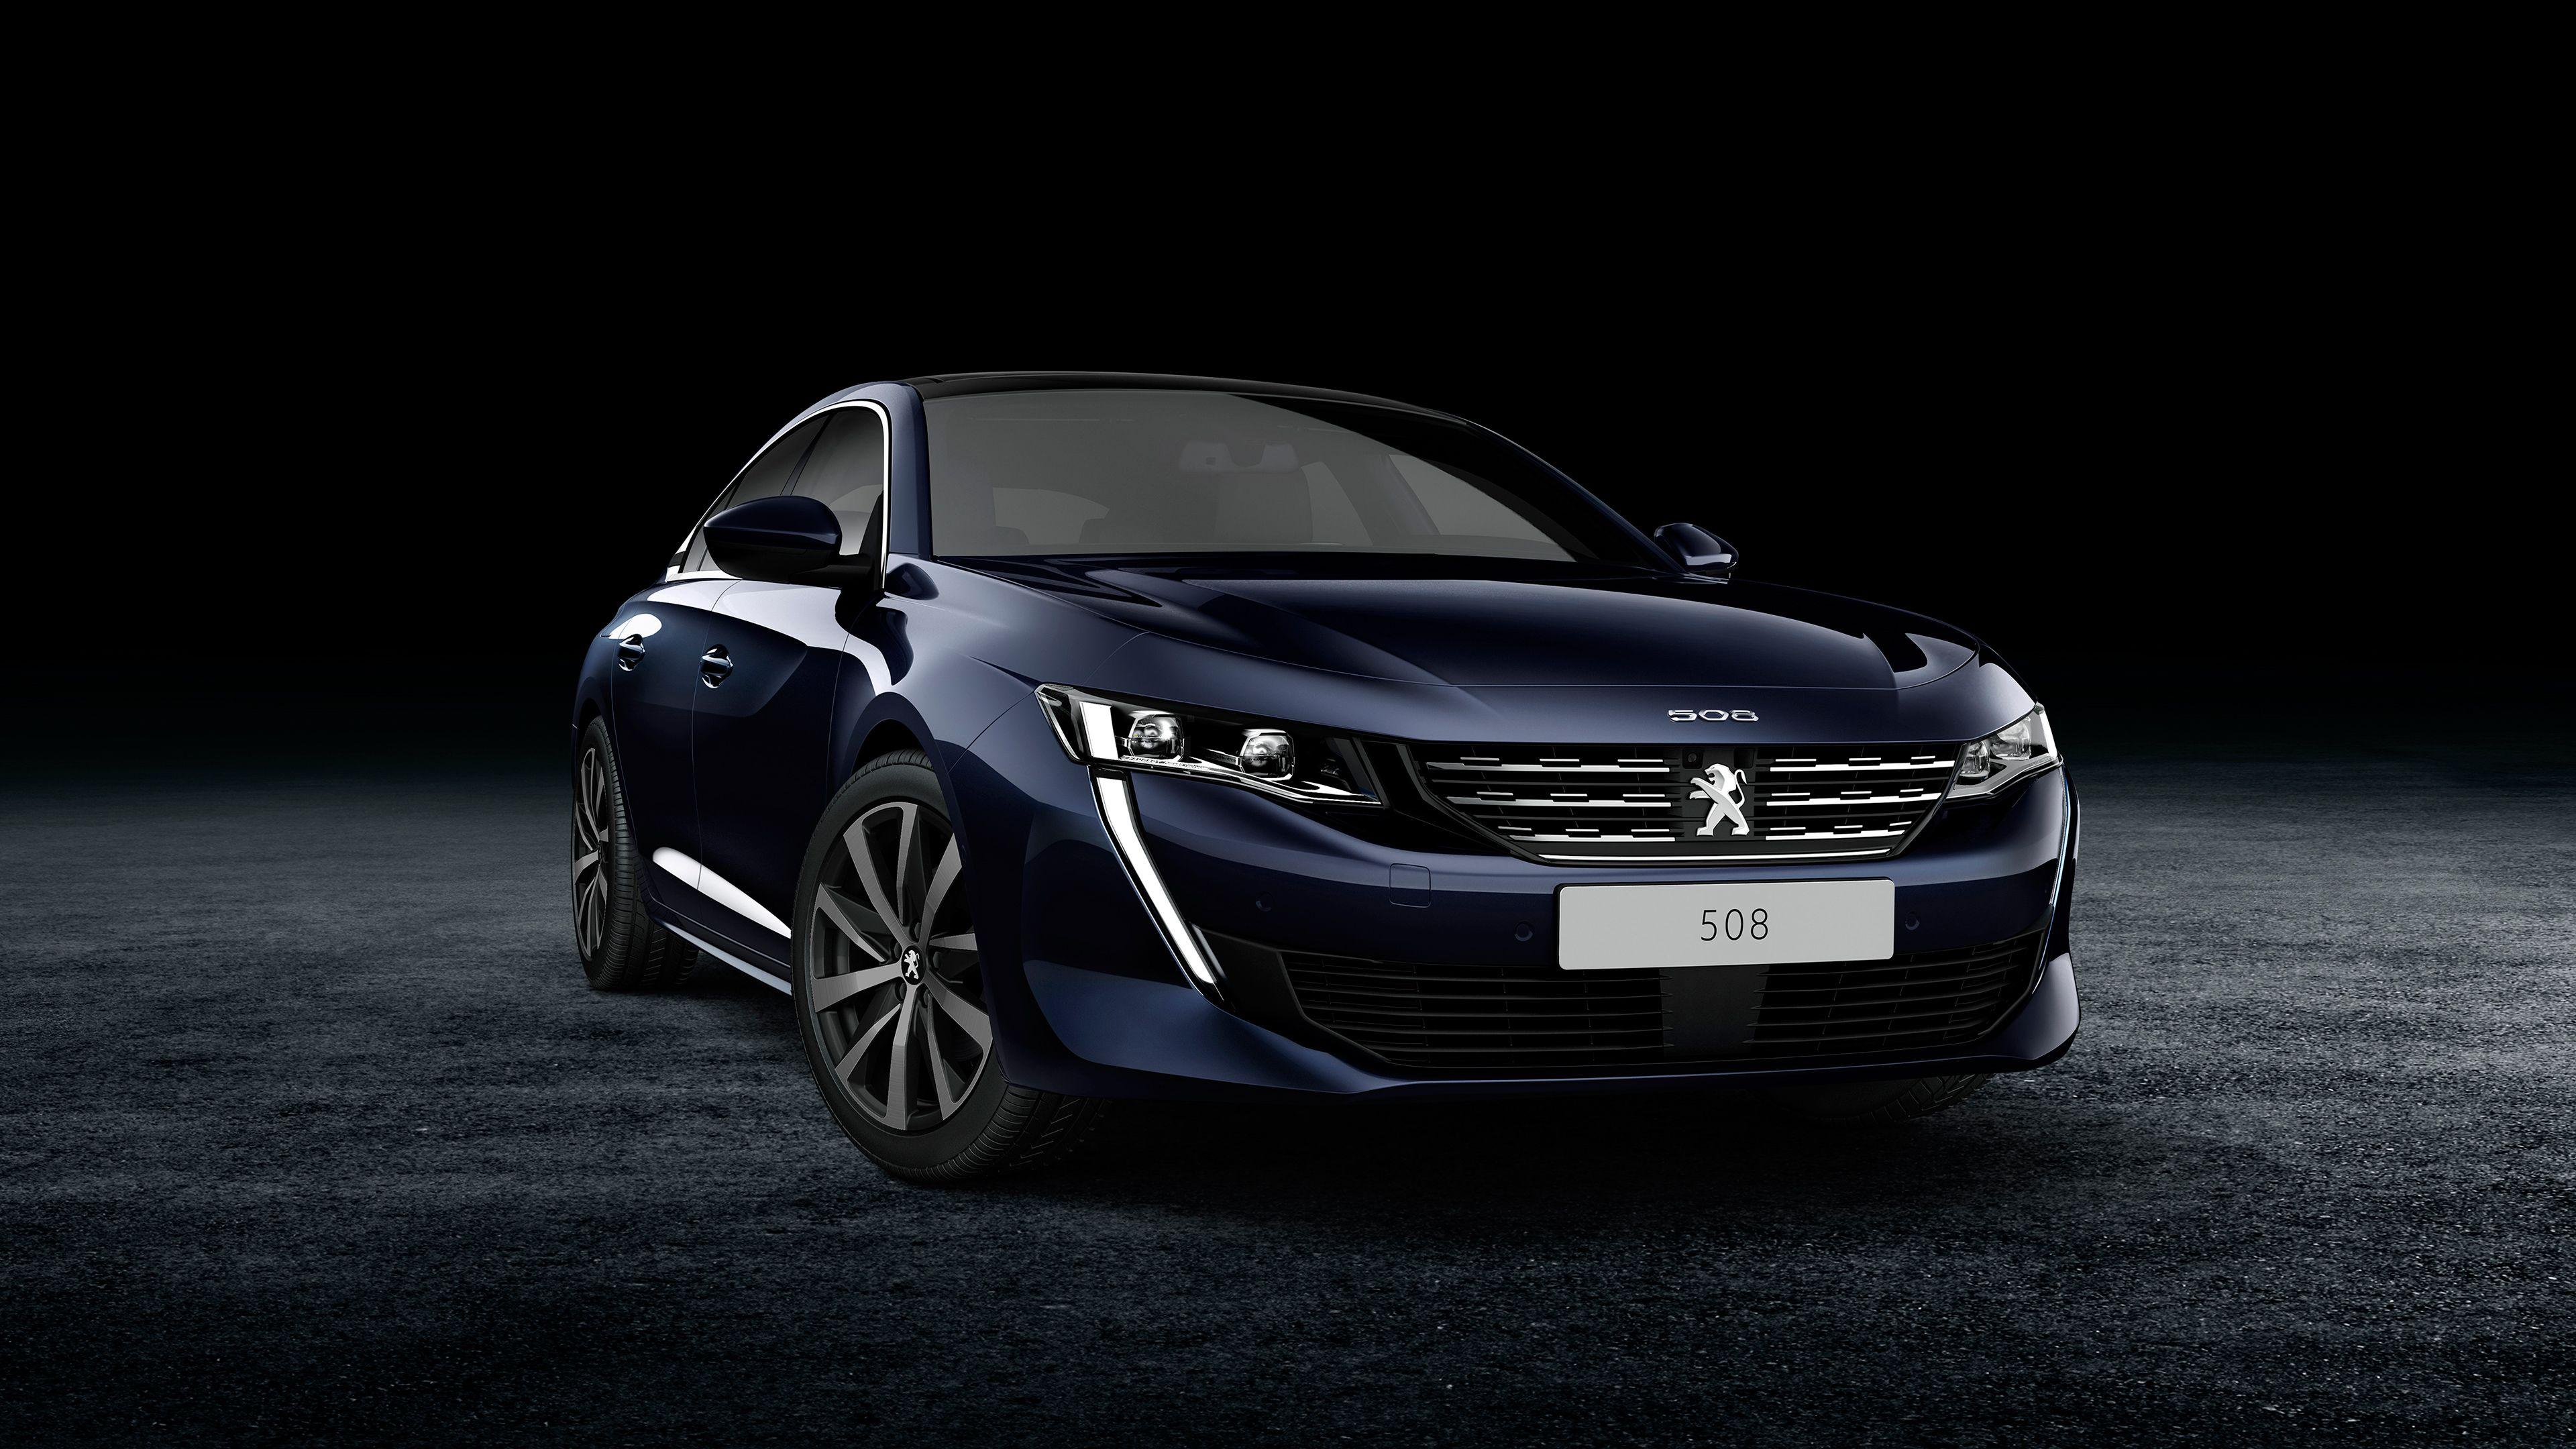 2018 Peugeot 508 4K Wallpapers